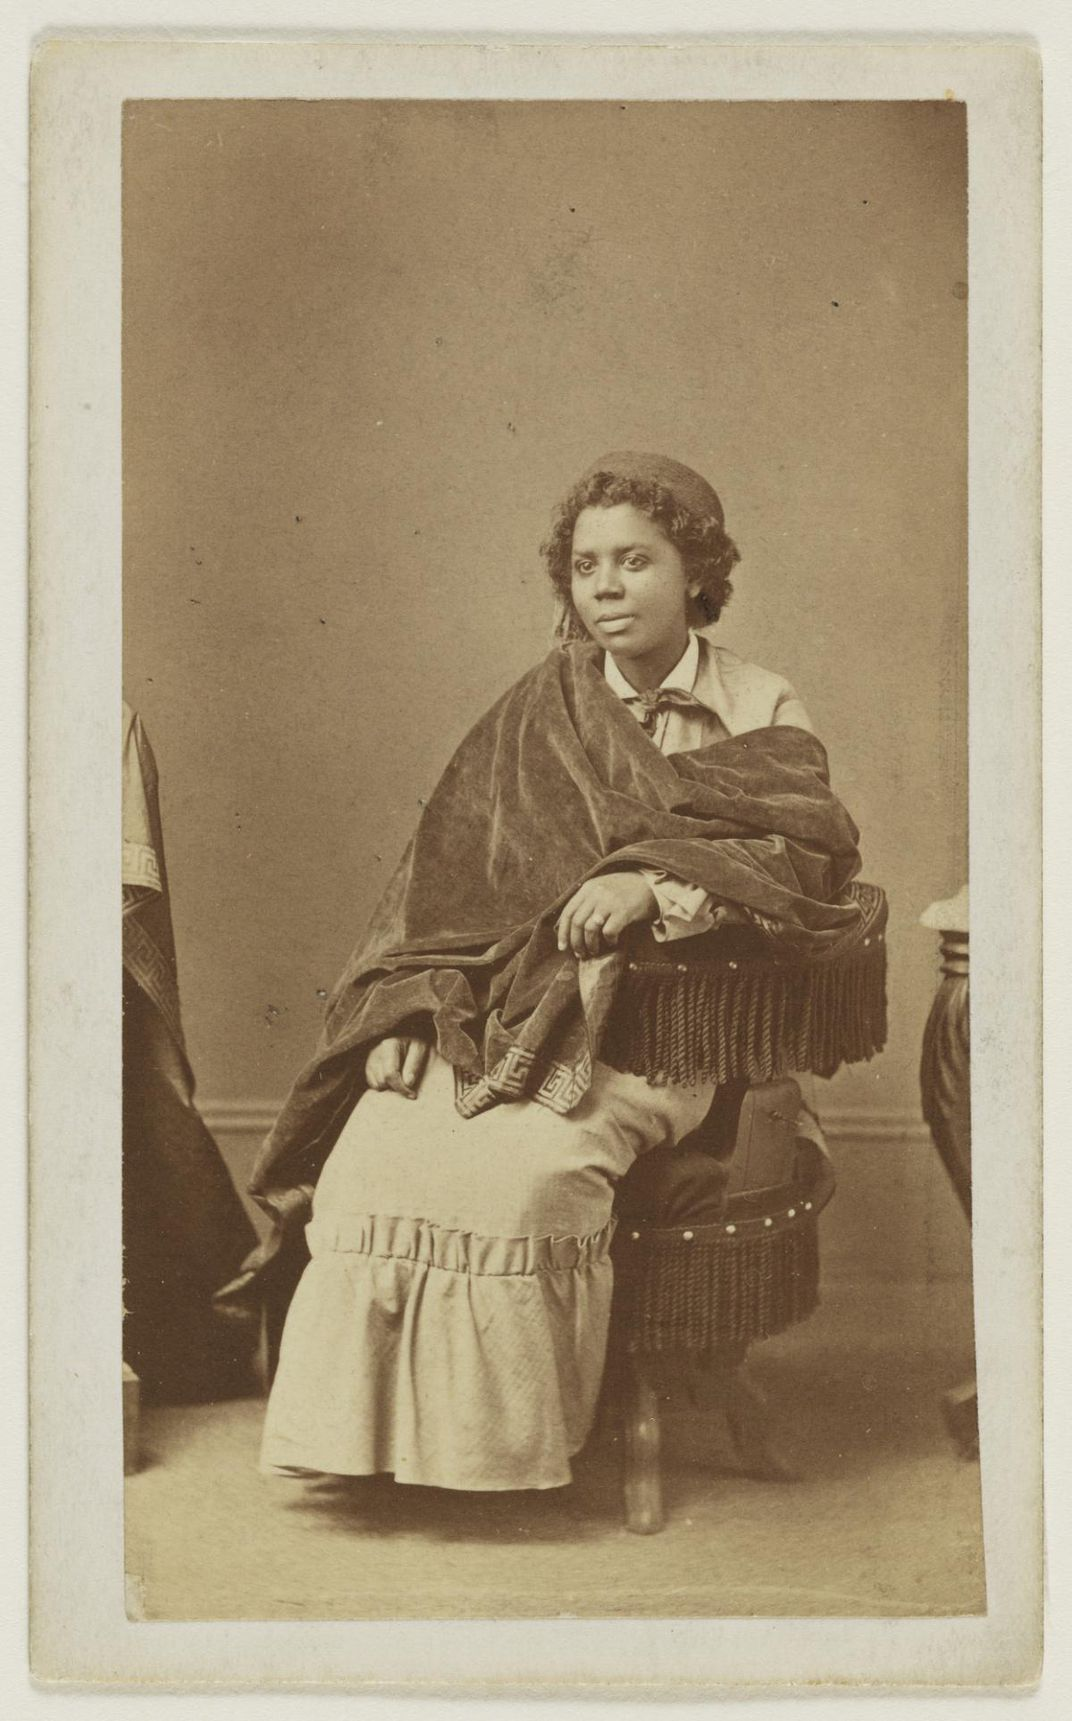 A sepia-toned image of a woman sitting in a chair, wrapped in a shawl.